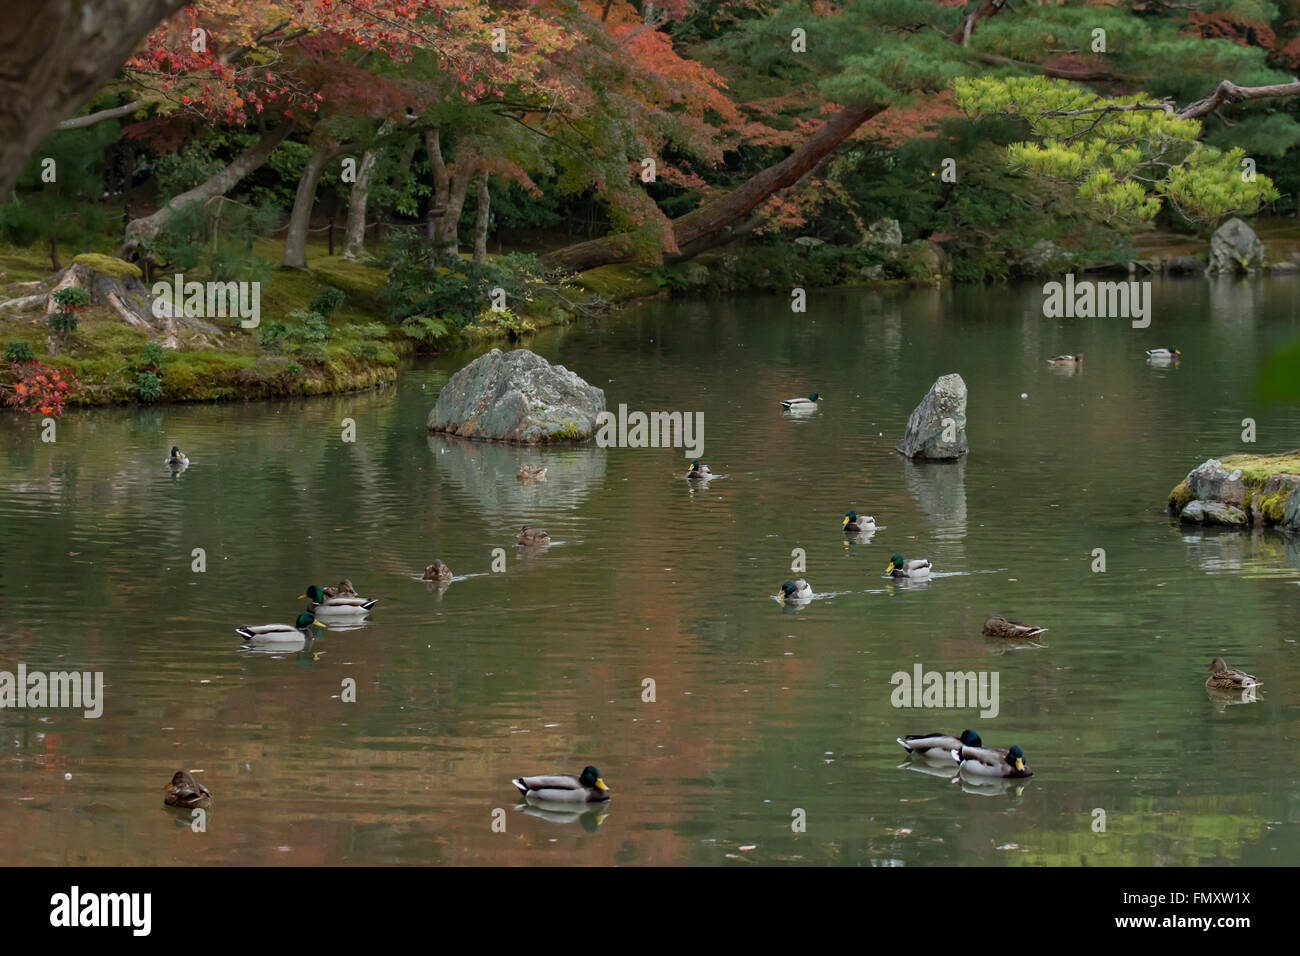 ducks in the pond around the Golden Pavilion (Kinkaku-ji) of Kyoto, Japan. autumn - Stock Image